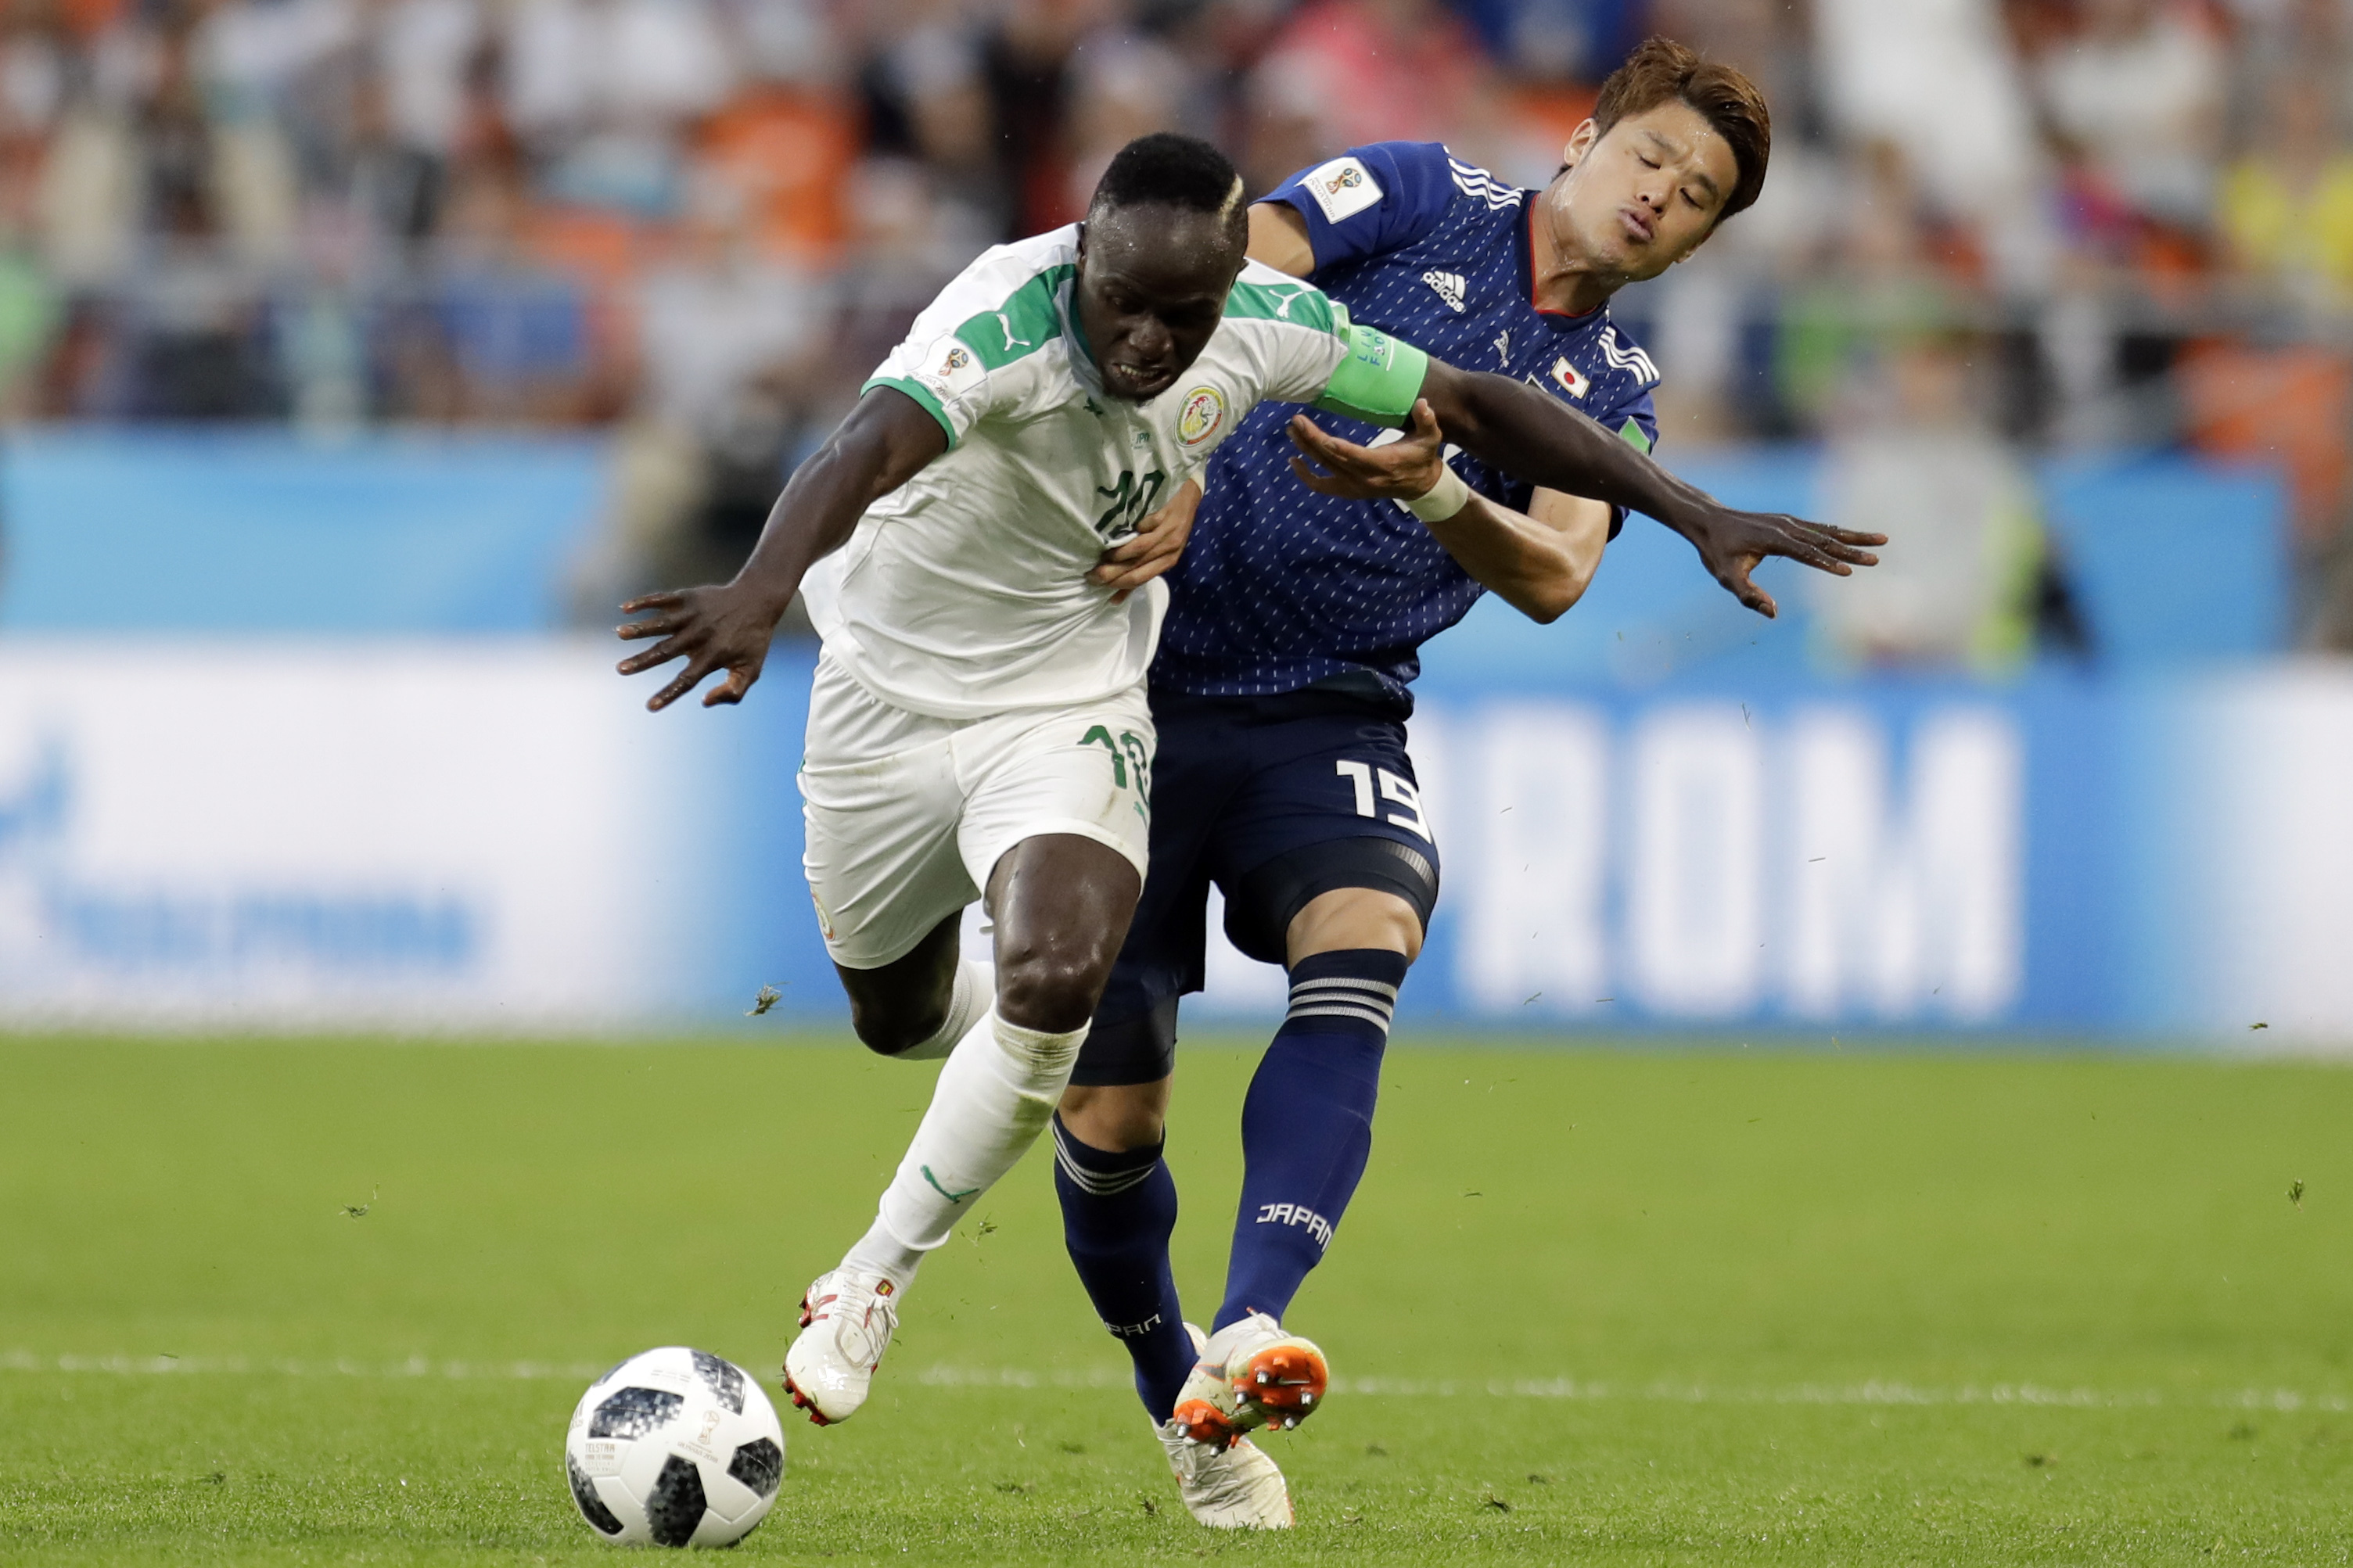 <div class='meta'><div class='origin-logo' data-origin='none'></div><span class='caption-text' data-credit='Natacha Pisarenko/AP Photo'>Senegal's Ismaila Sarr, left, and Japan's Hiroki Sakai fight for the ball during the group H match in the Yekaterinburg Arena in Yekaterinburg, Russia, Sunday, June 24, 2018.</span></div>